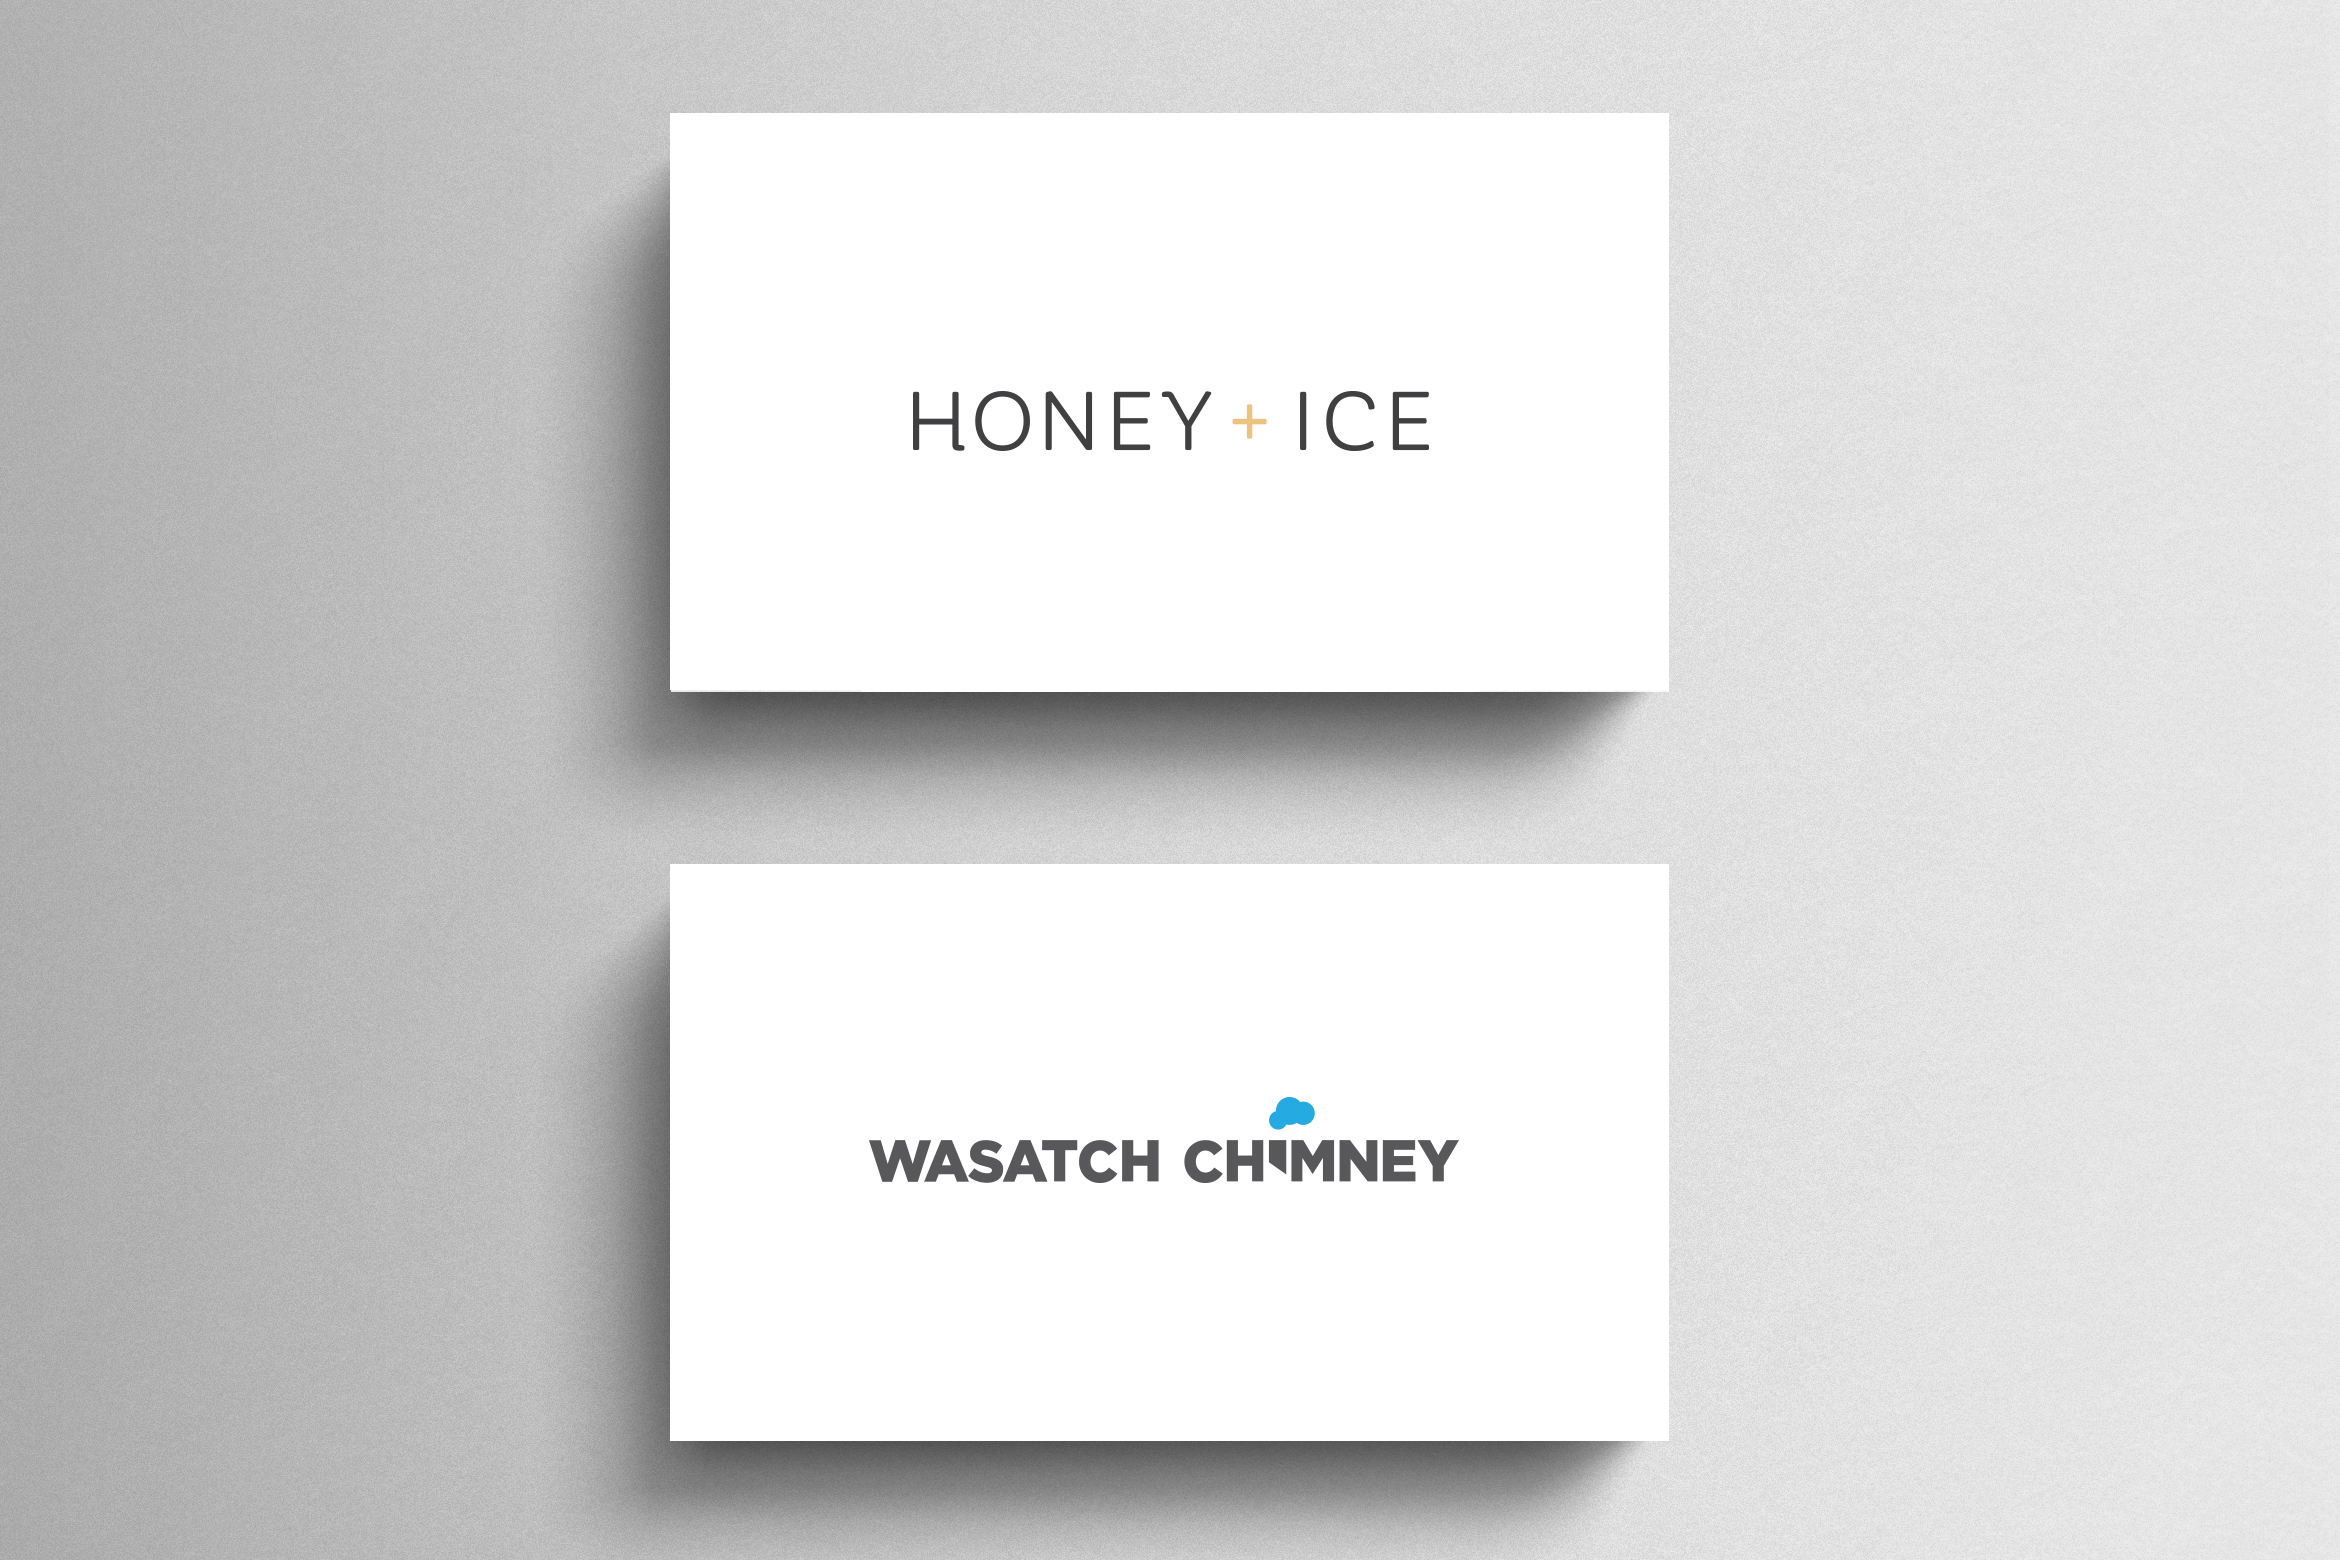 logos honey_ice_wasatch_chimney.jpg